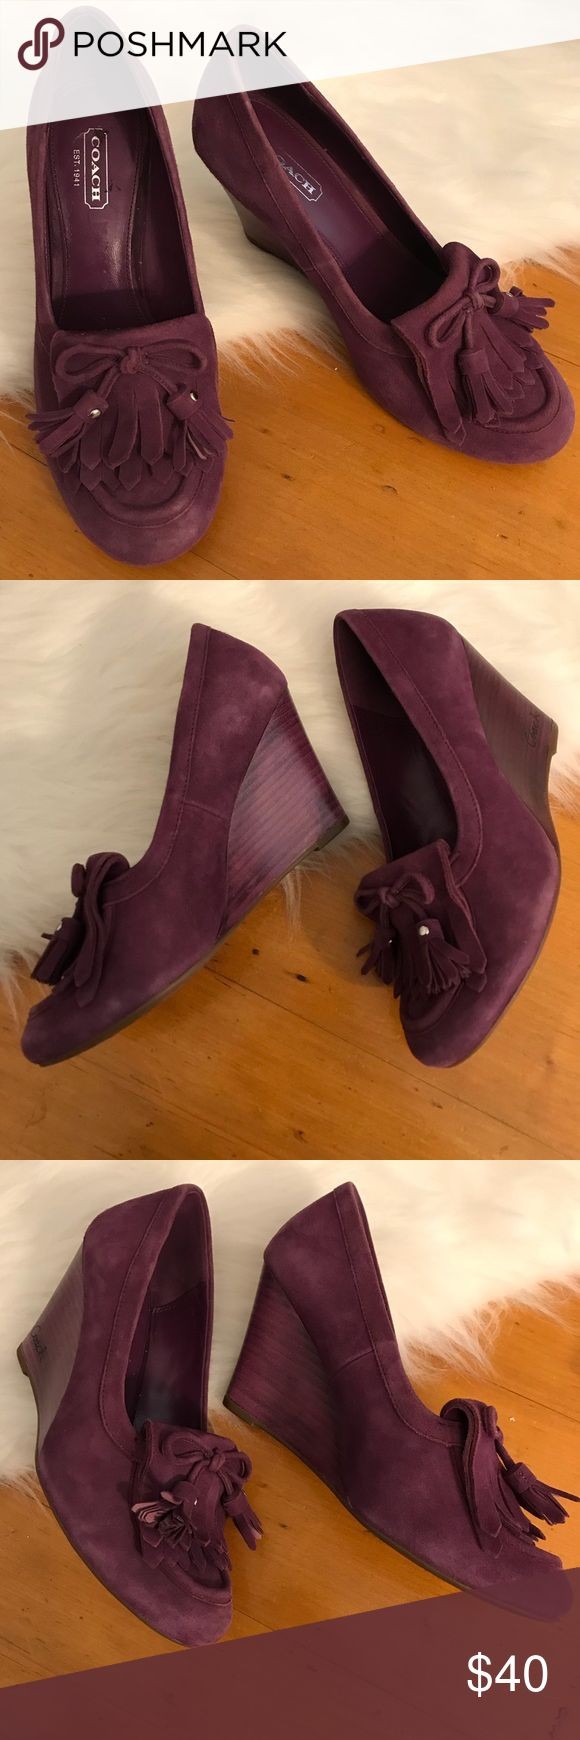 [ Coach ] Purple Suede Oxford Wedges Super cute and in great condition! Coach Shoes Wedges